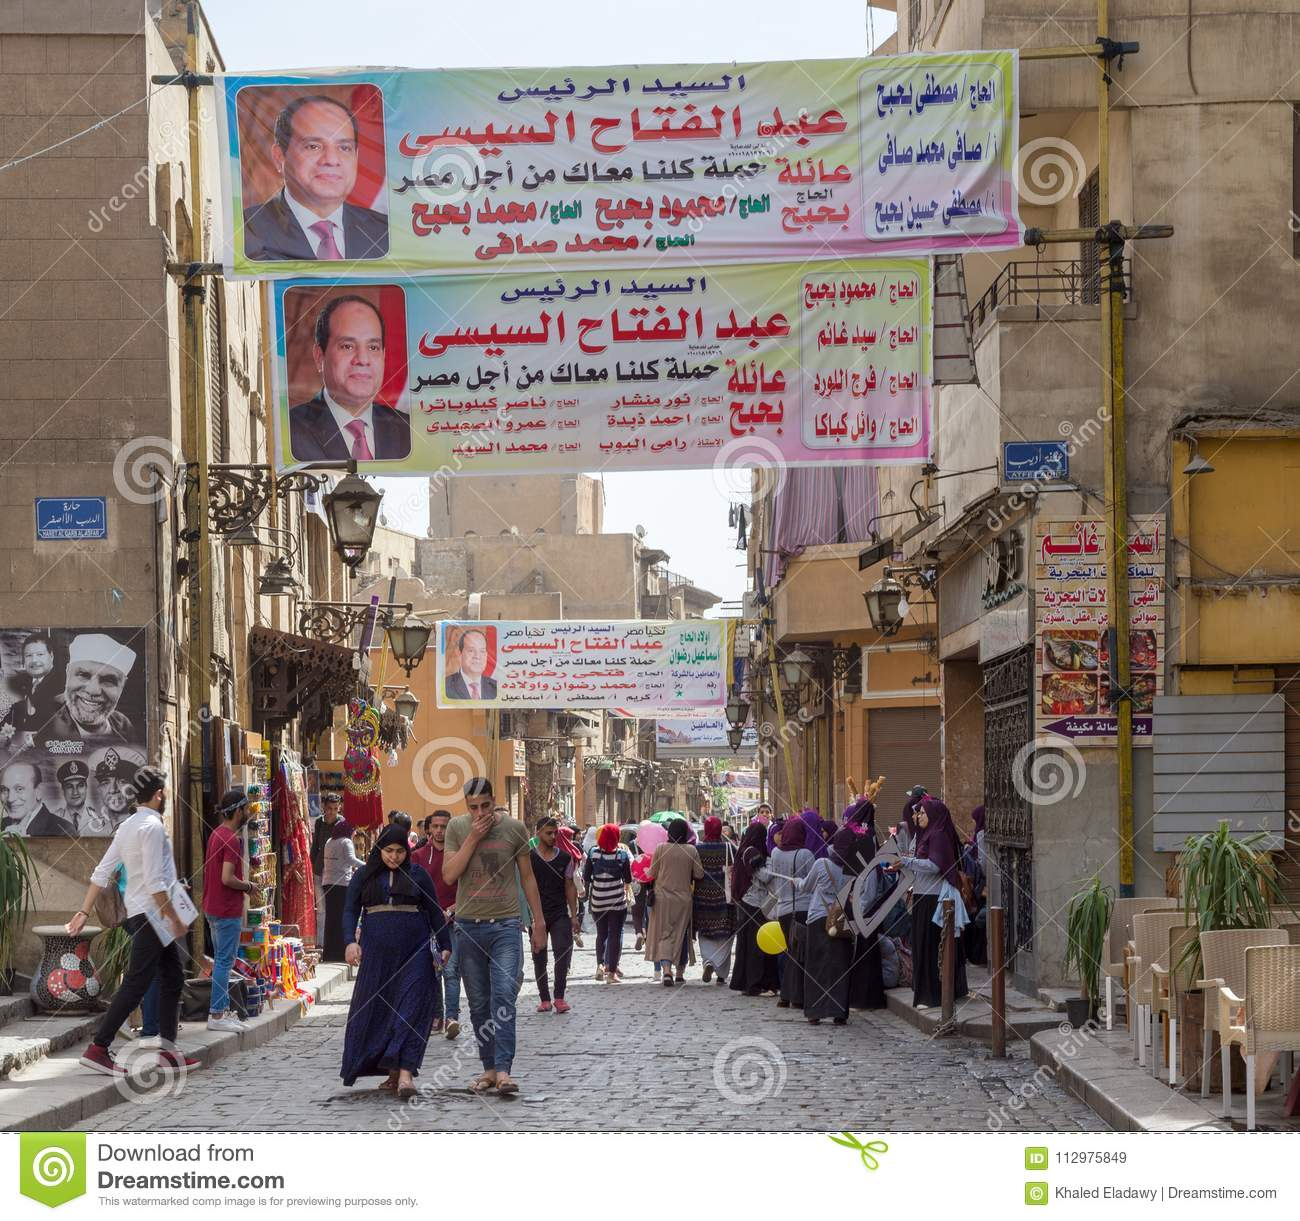 Banners supporting current Egyptian president Abdel-Fattah El-Sisi for for presidential elections atAl Moez Street, Cairo, Egypt